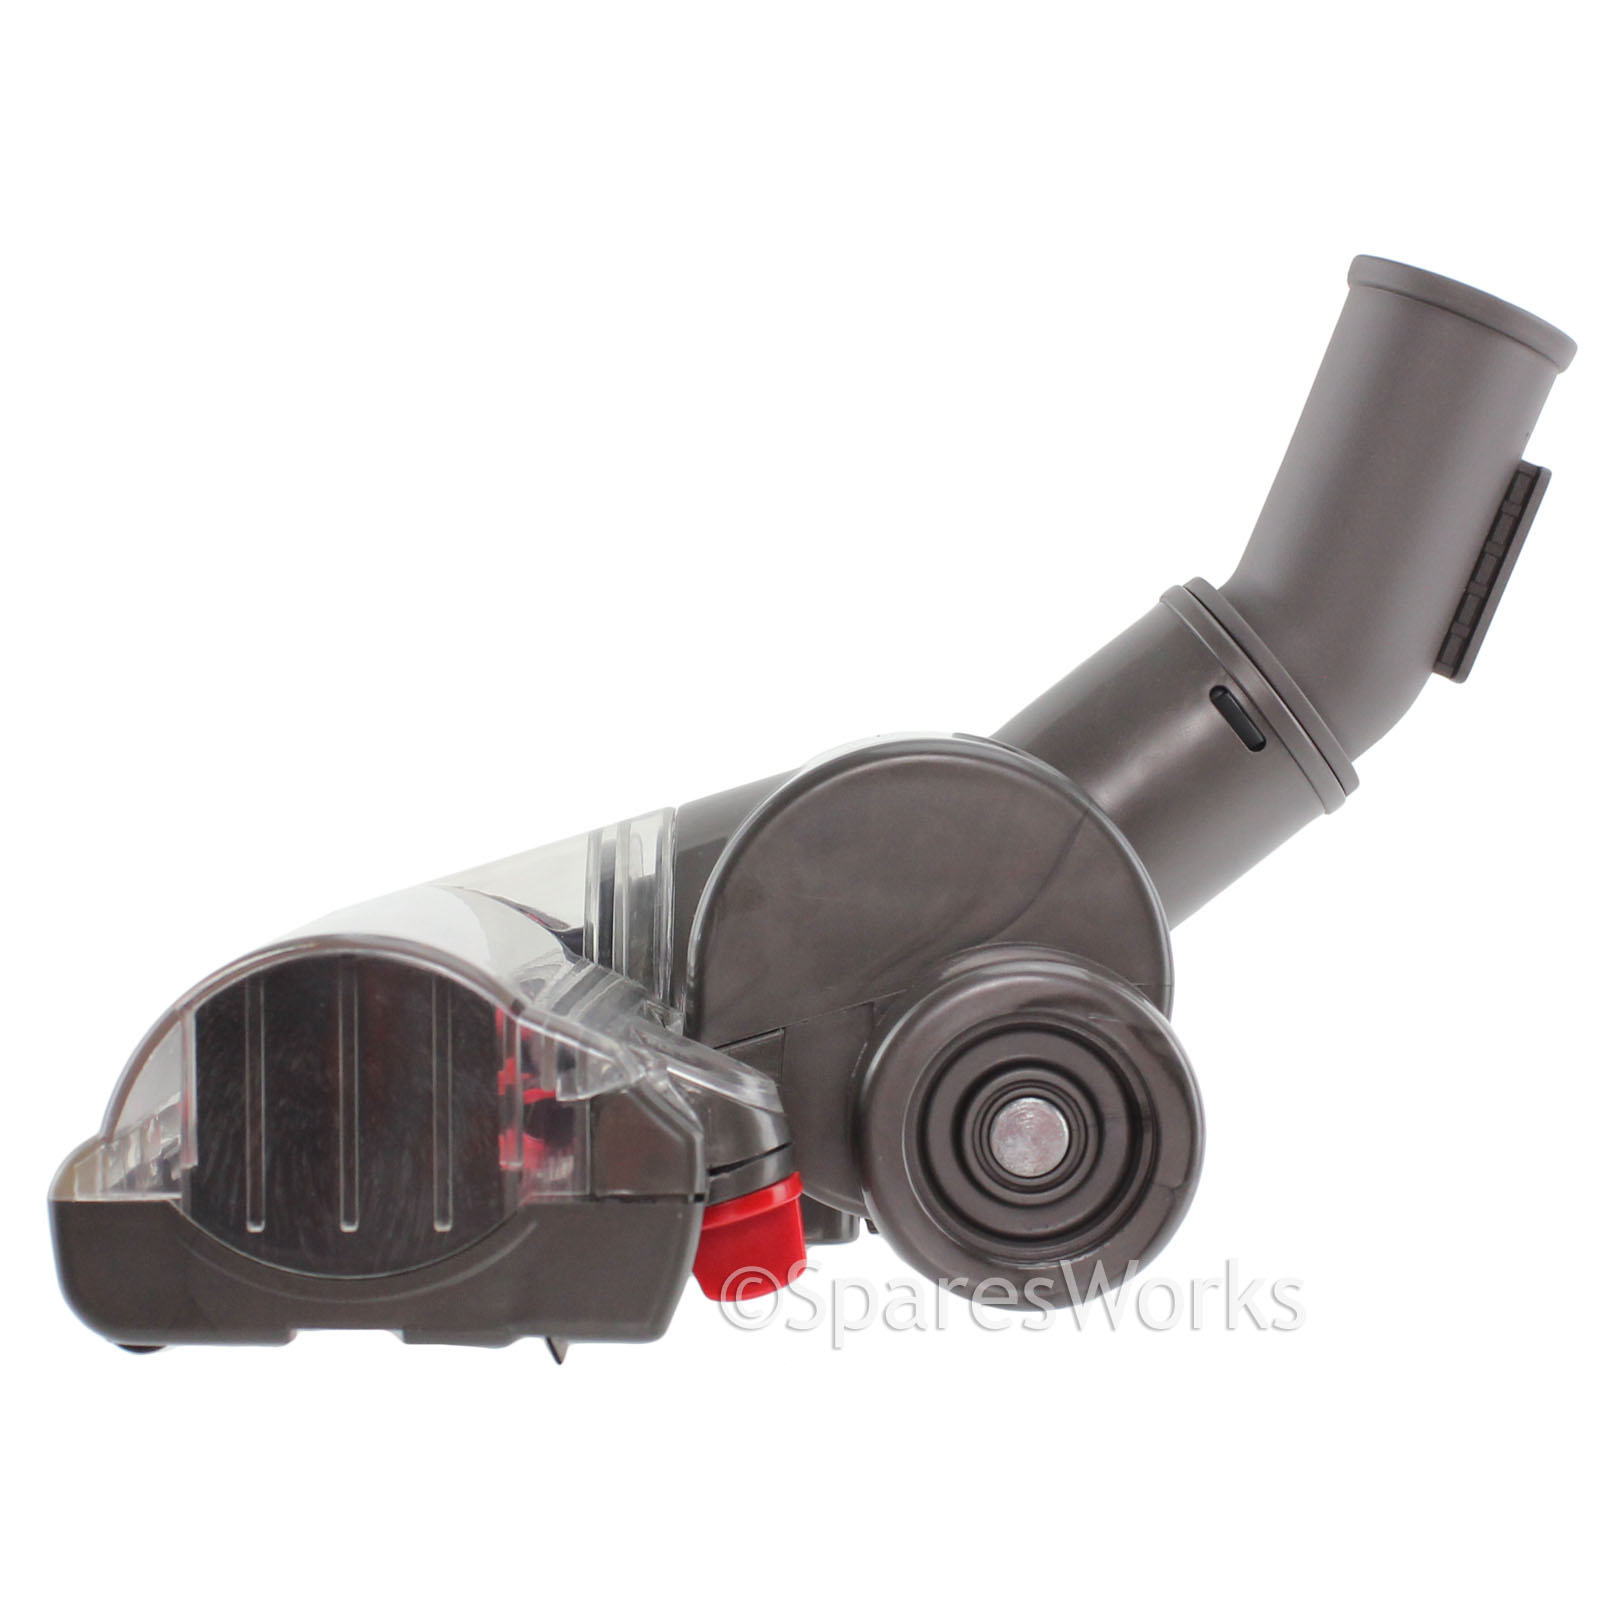 Vacuum Cleaner Twin Turbo Brush Head For Parkside Hoover Tool 35mm Ebay